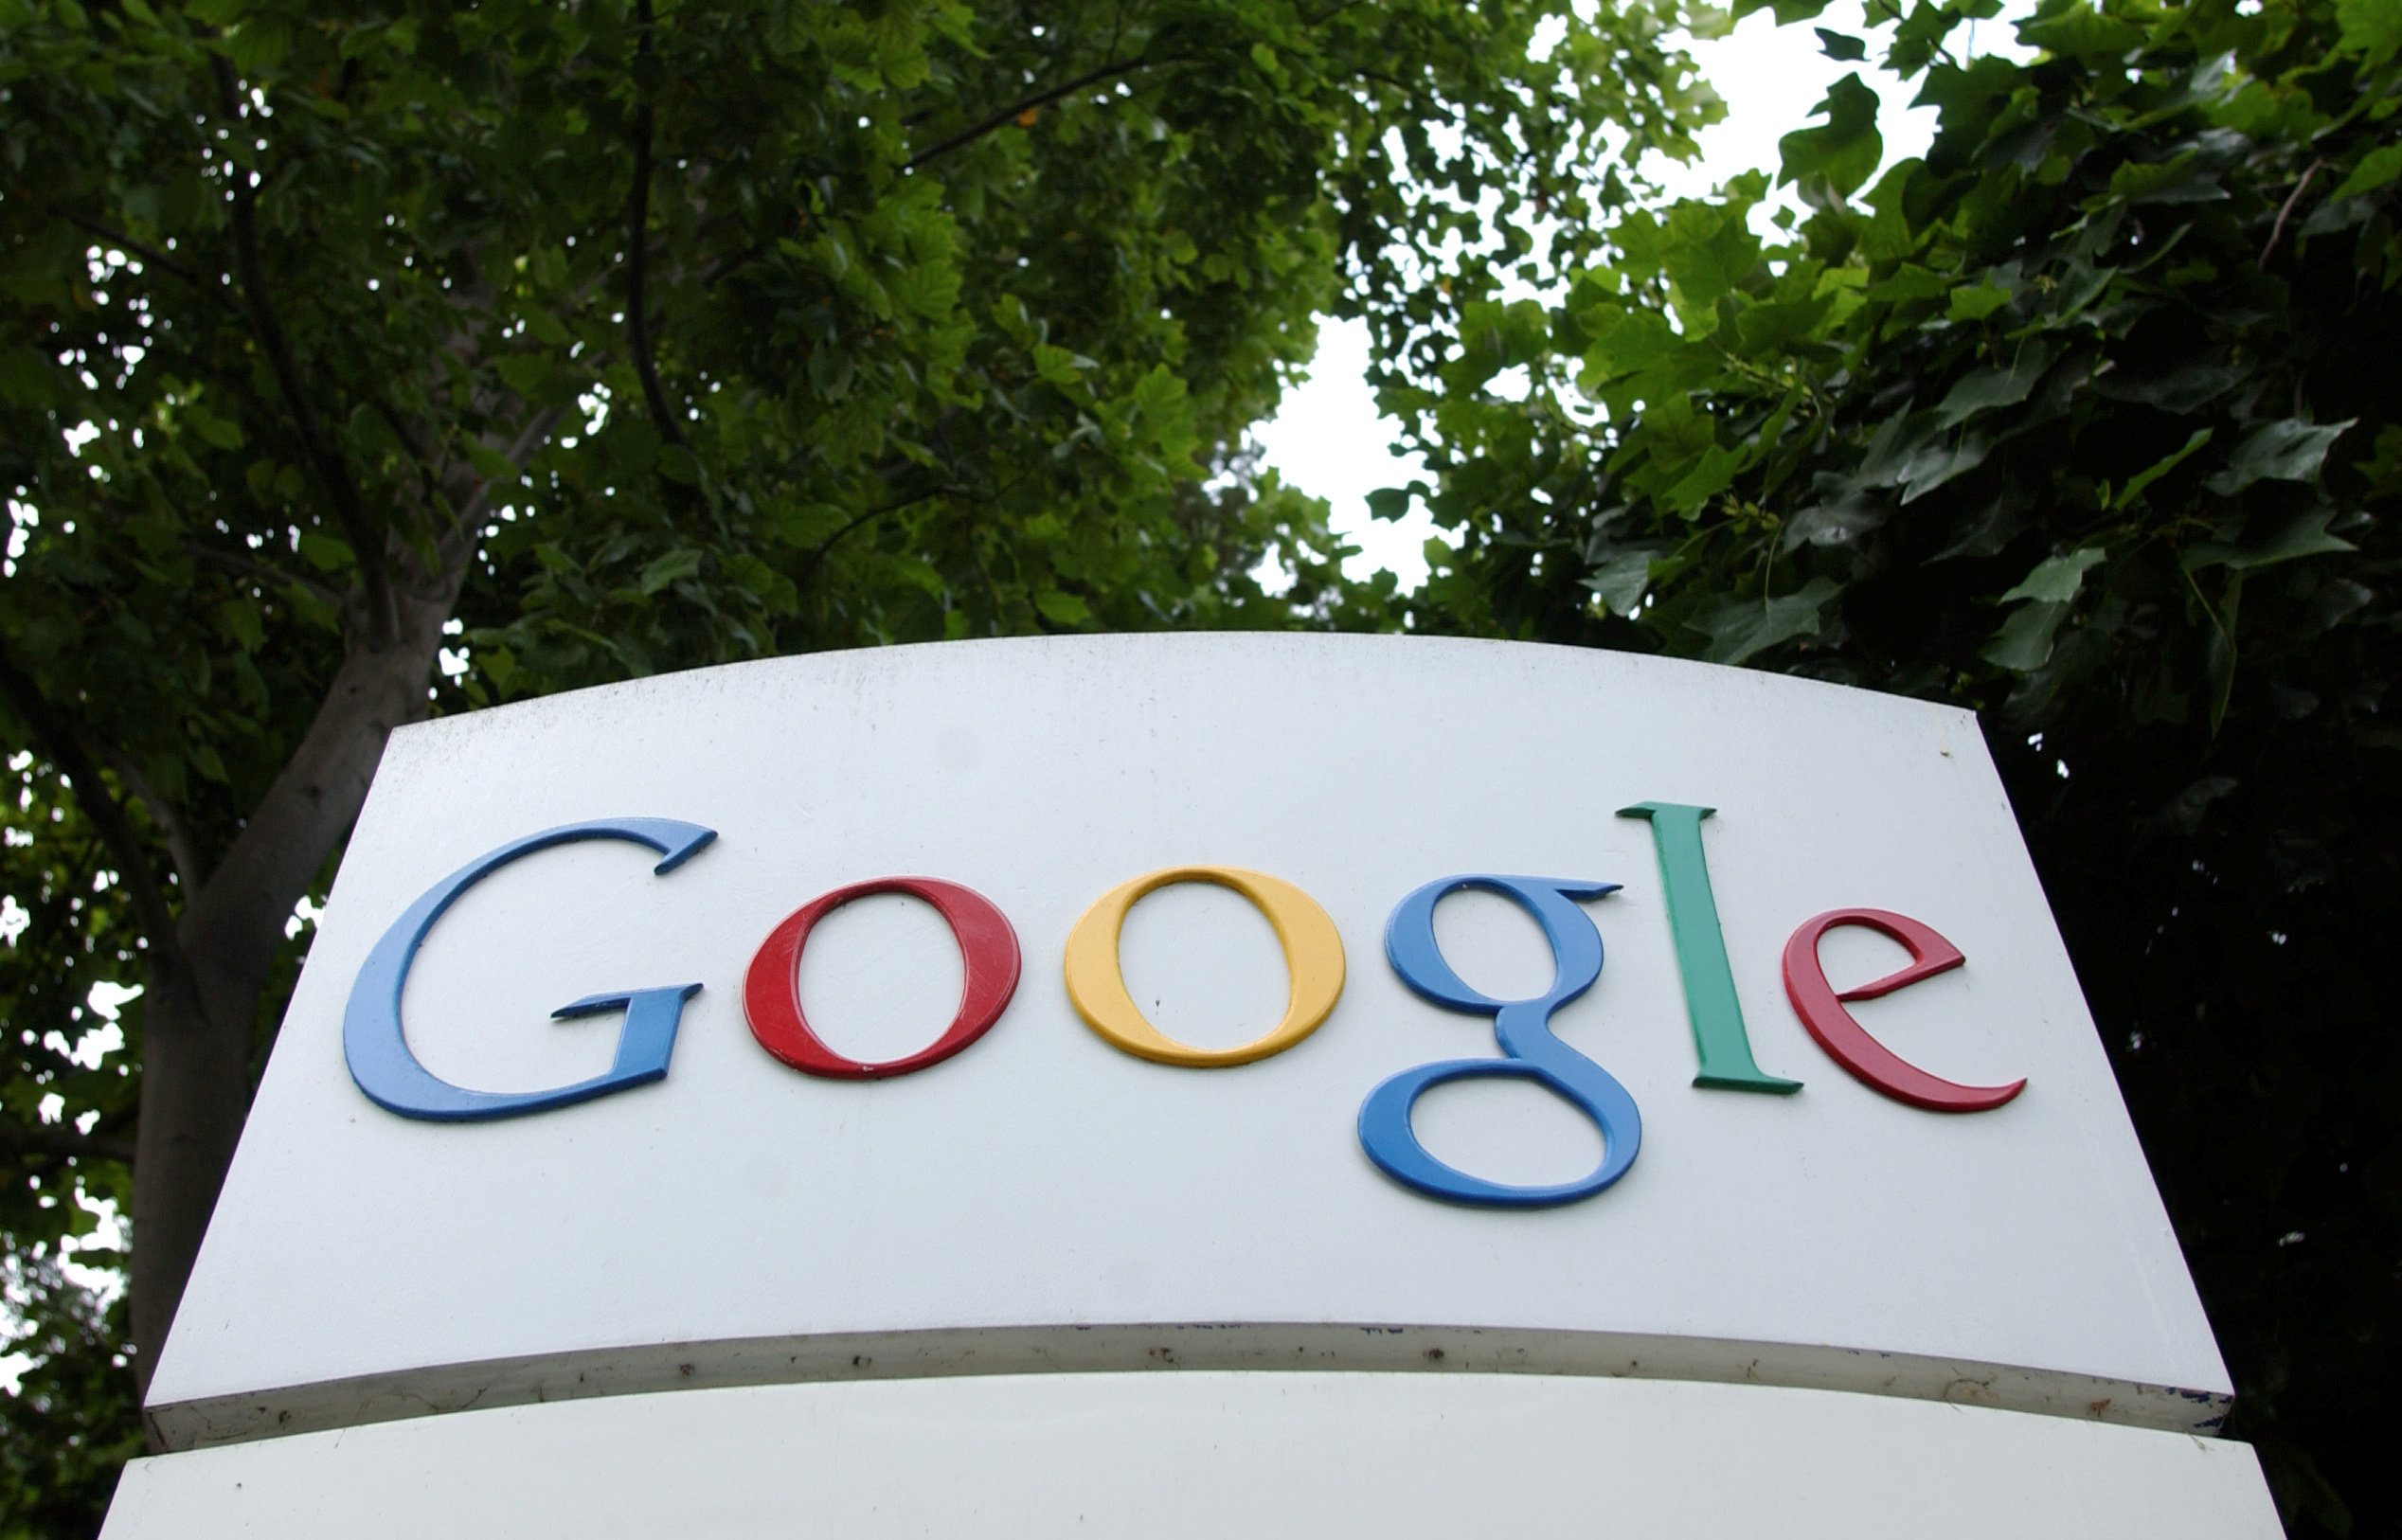 The Google Inc. logo is seen outside their headquarters in Mountain View, California August 18, 2004. REUTERS/Clay McLachlan/File Photo